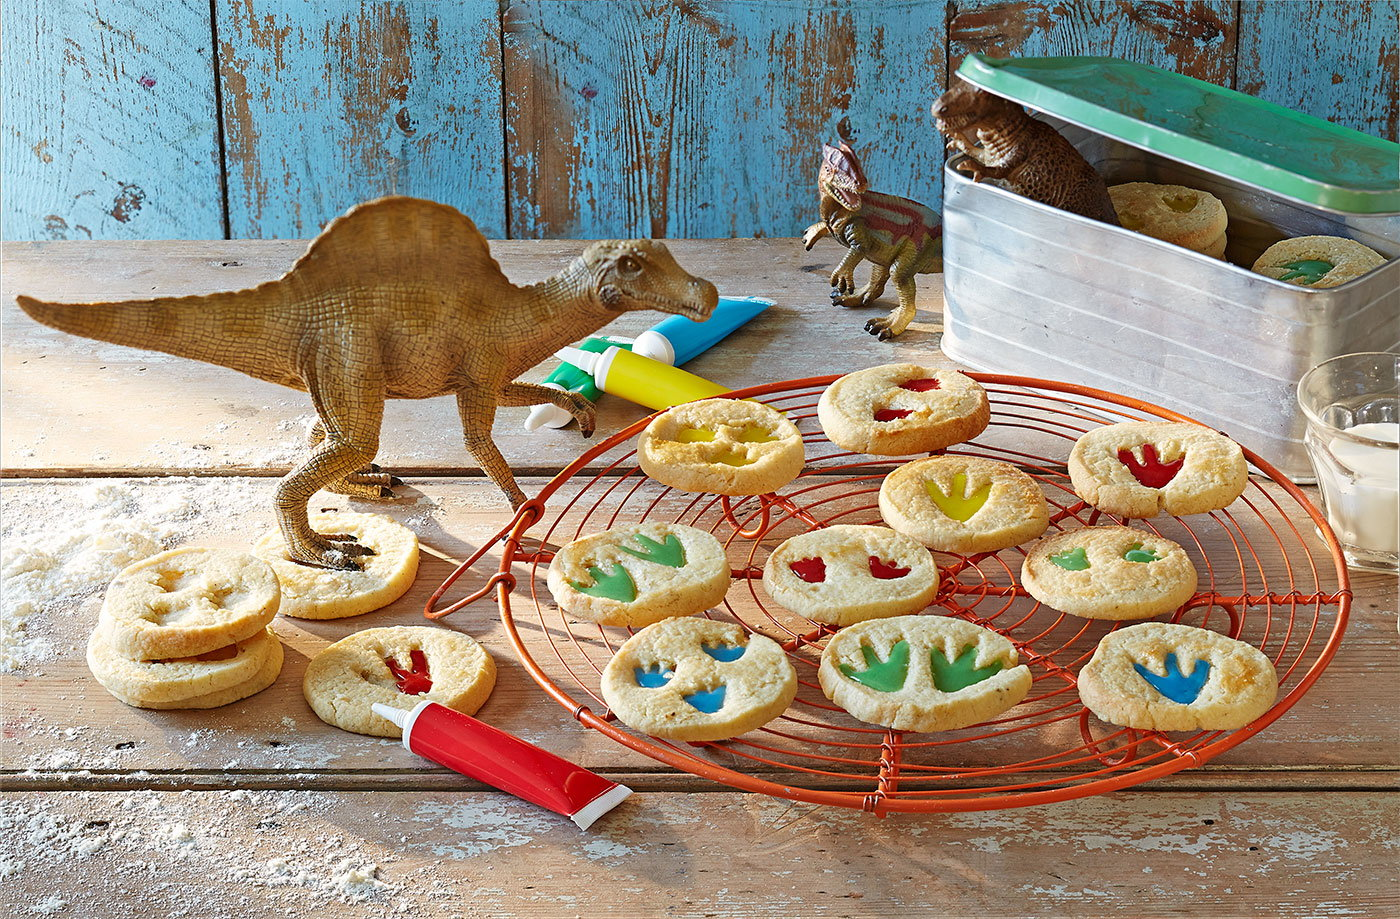 dinosaur footprint biscuits